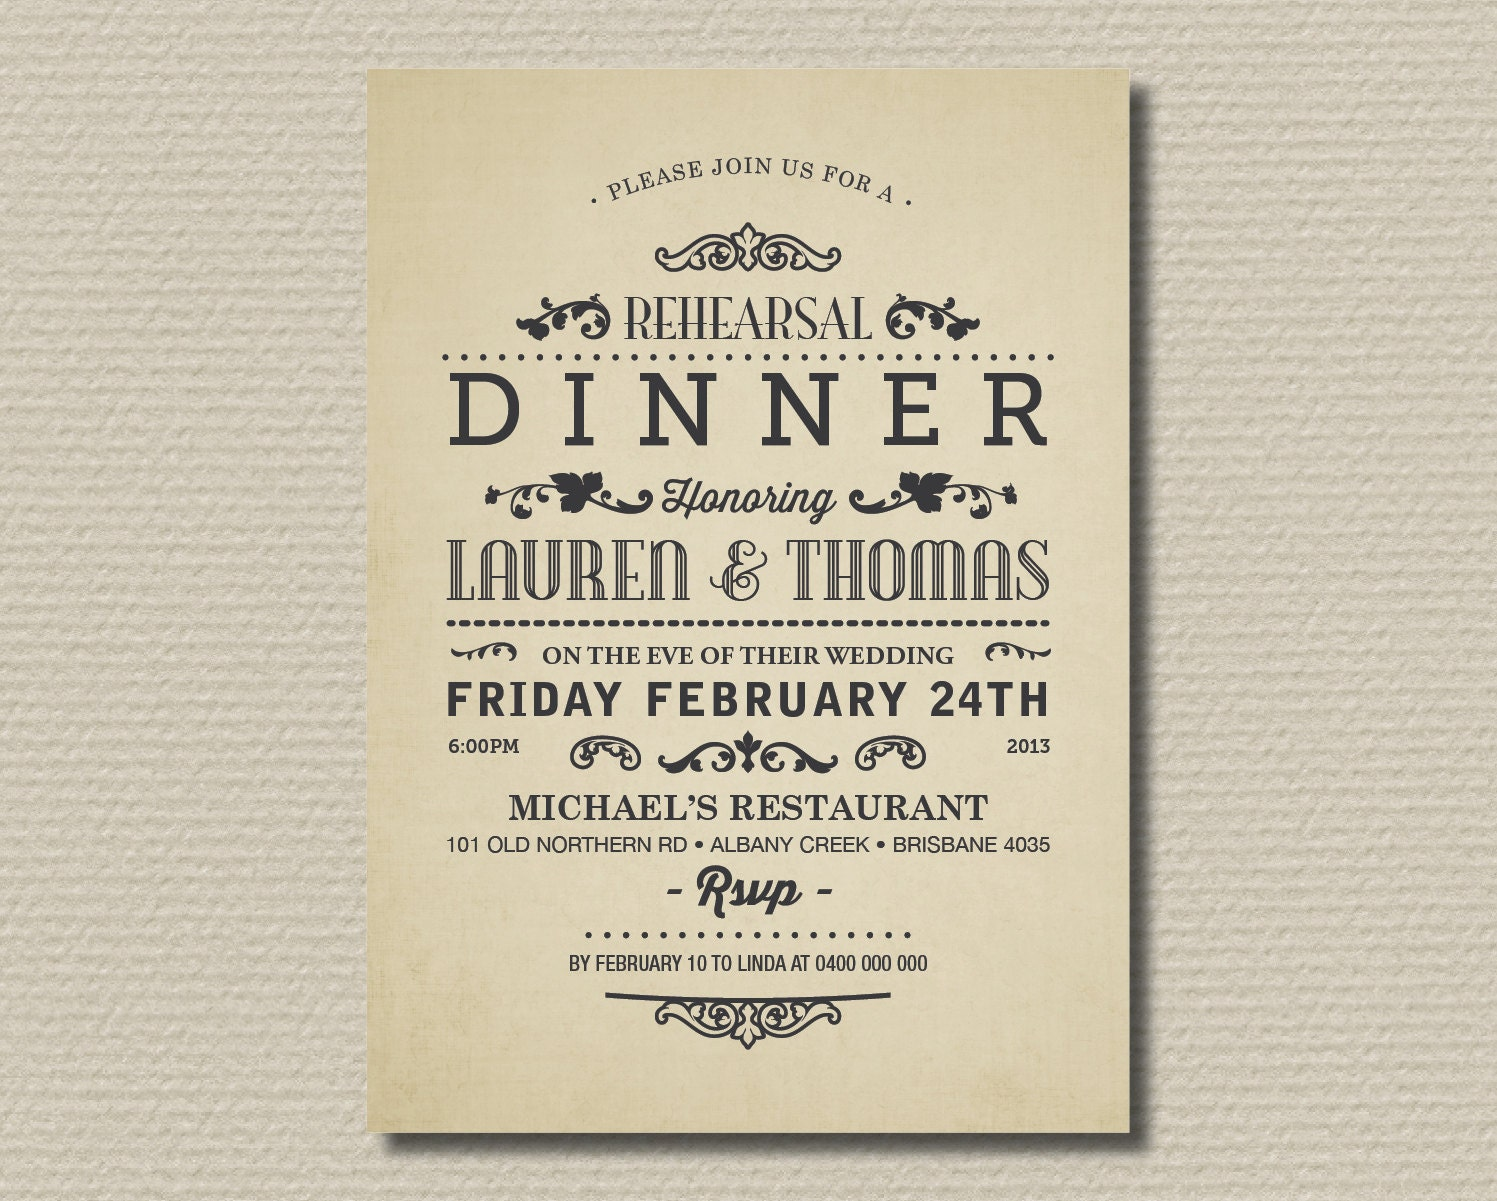 Dinner invite wording free custom invitation template design surprise birthday party invitation wording wordings and messages printable wedding rehearsal and dinner by rosiedaydesign on etsy stopboris Choice Image